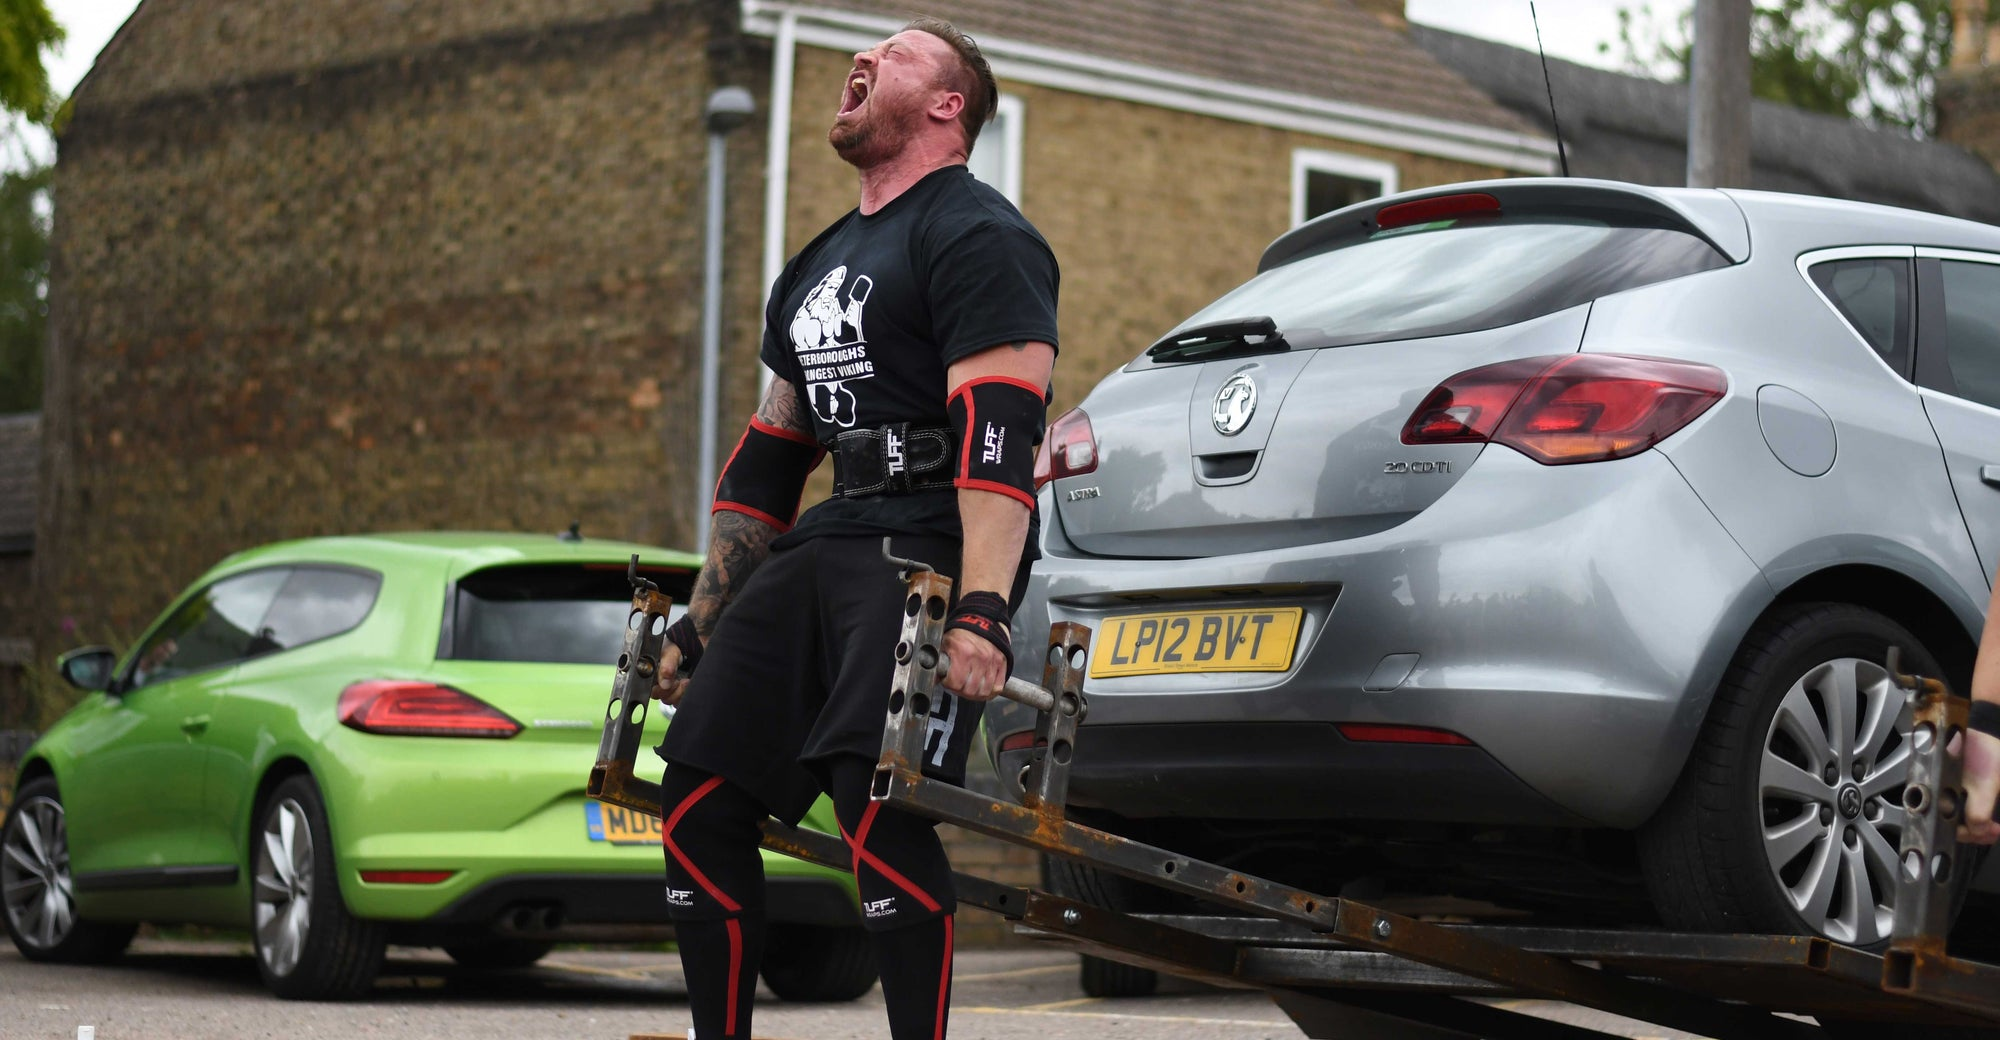 James William's Wins Peterborough's Strongest Man......